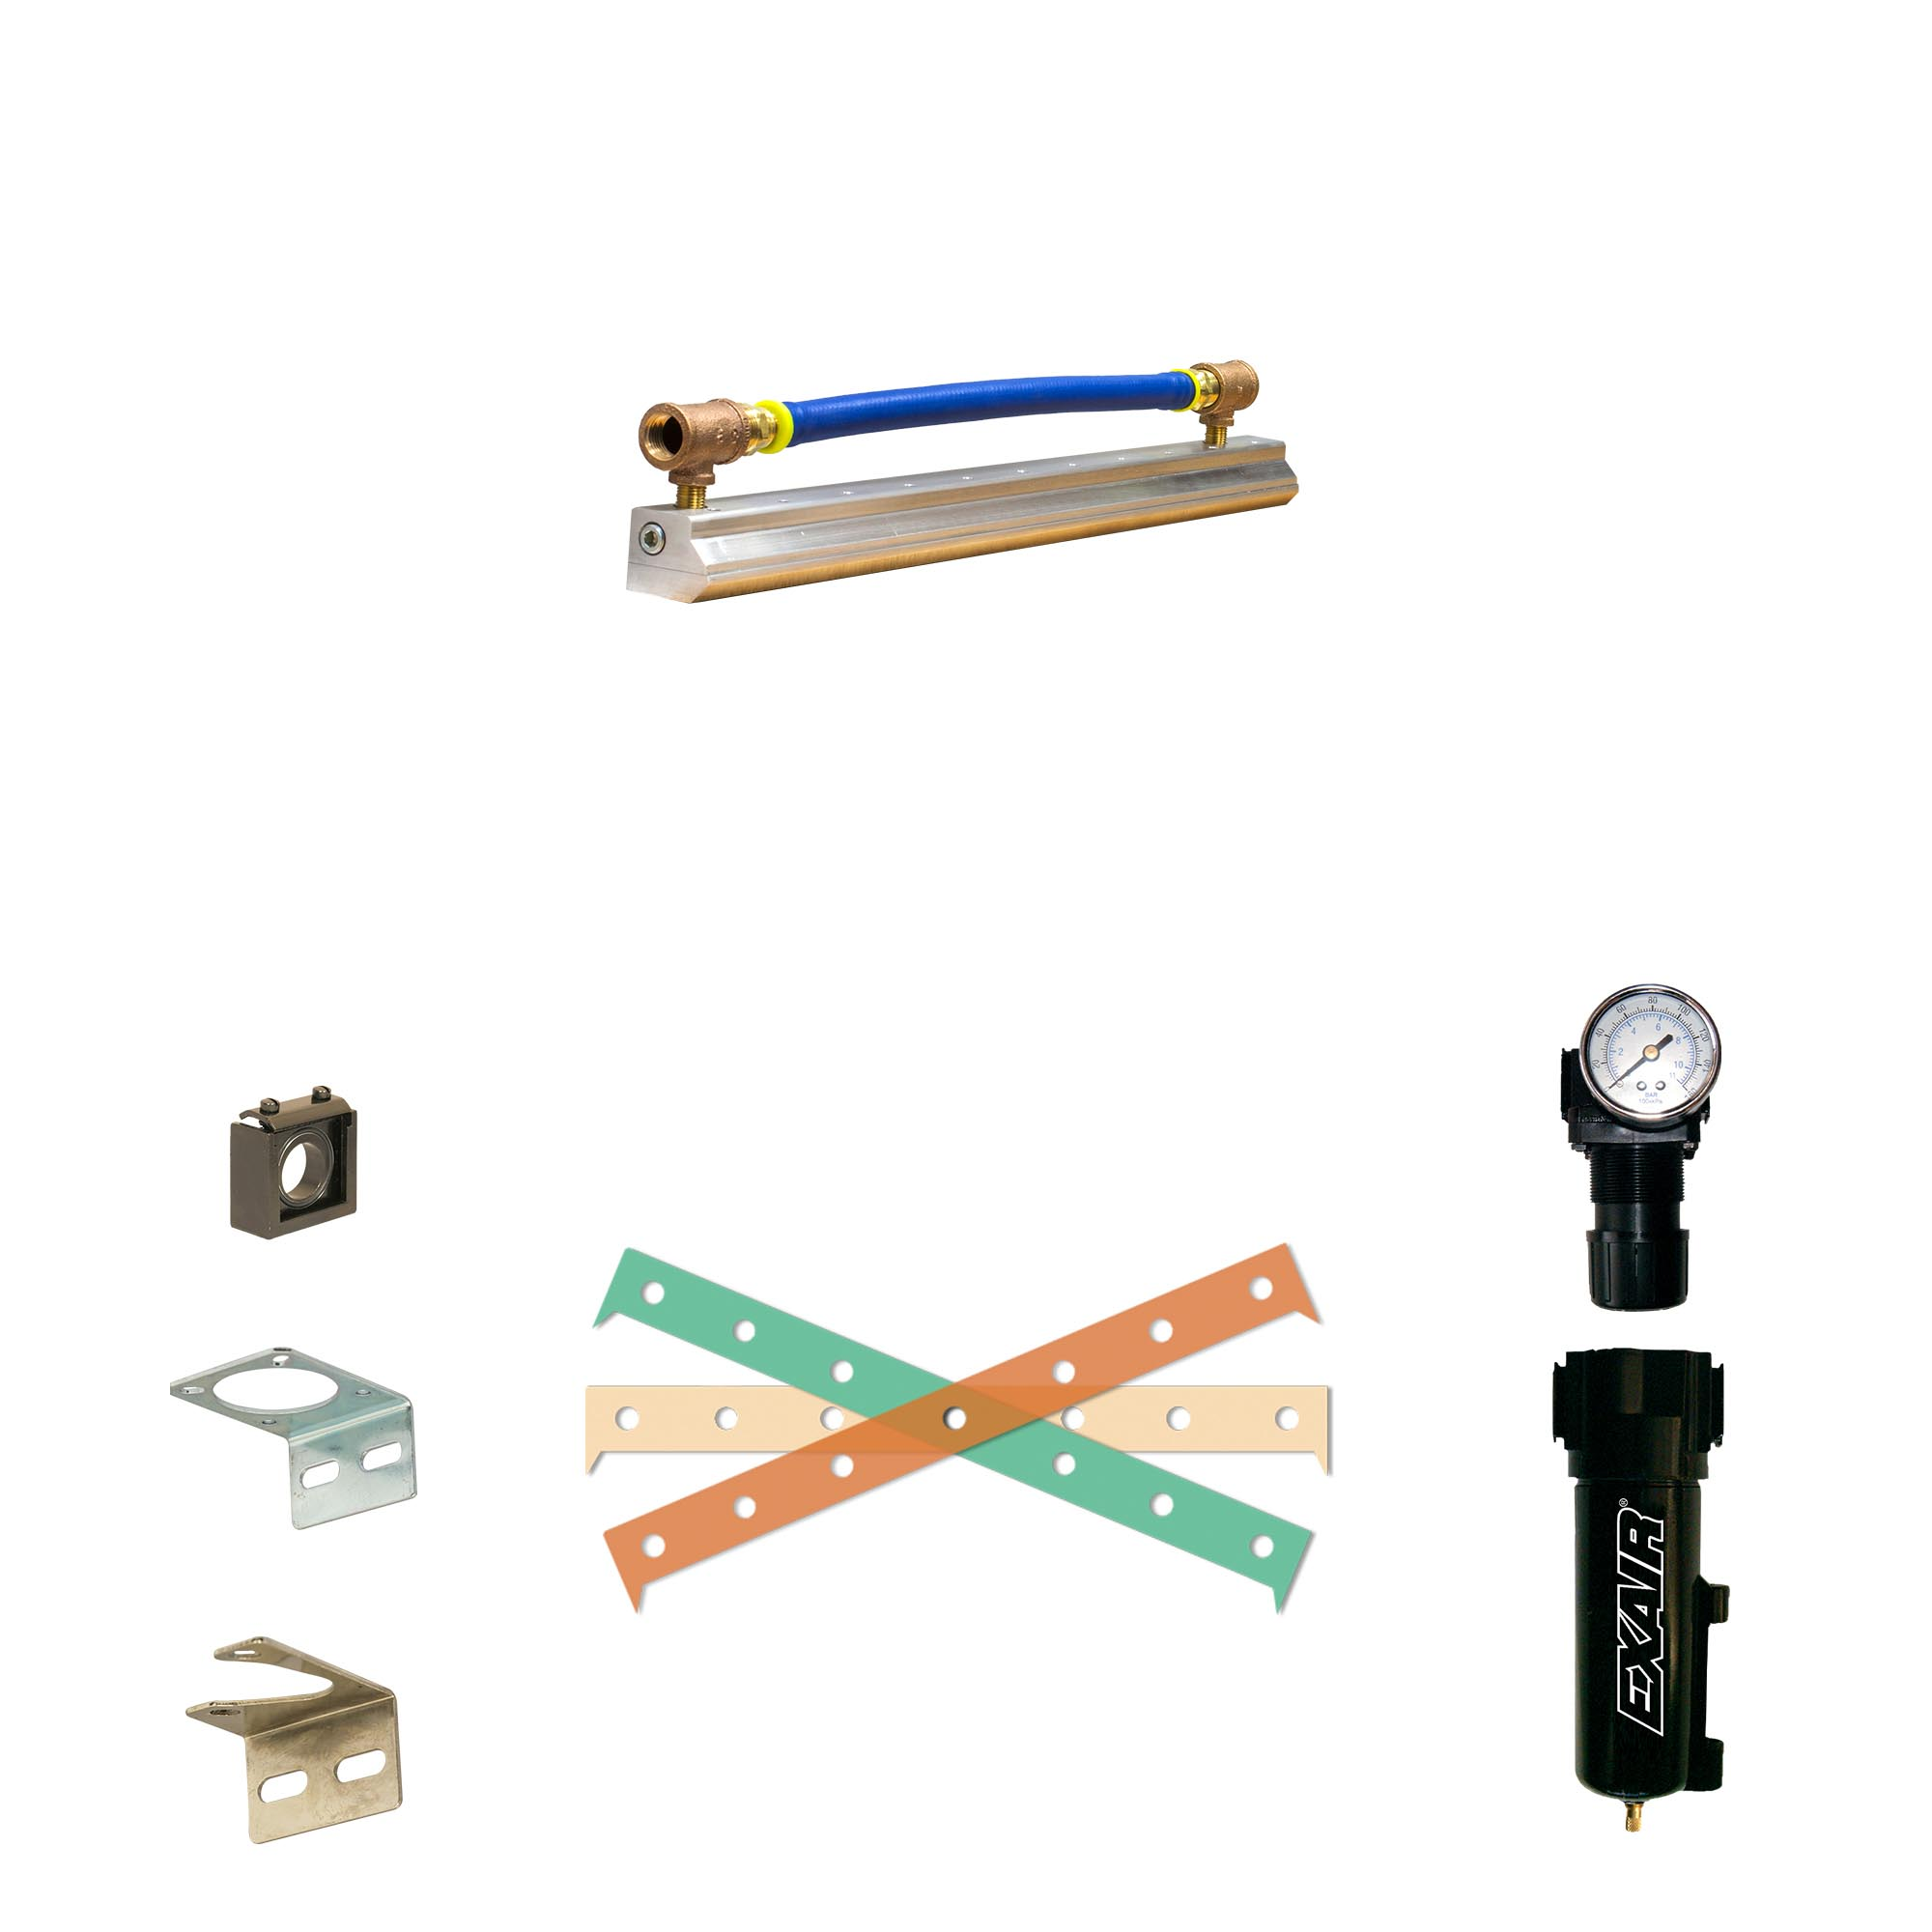 Super Air Knife Kits with Plumbing Kit installed prevent the search for fittings and correctly sized supply hose.